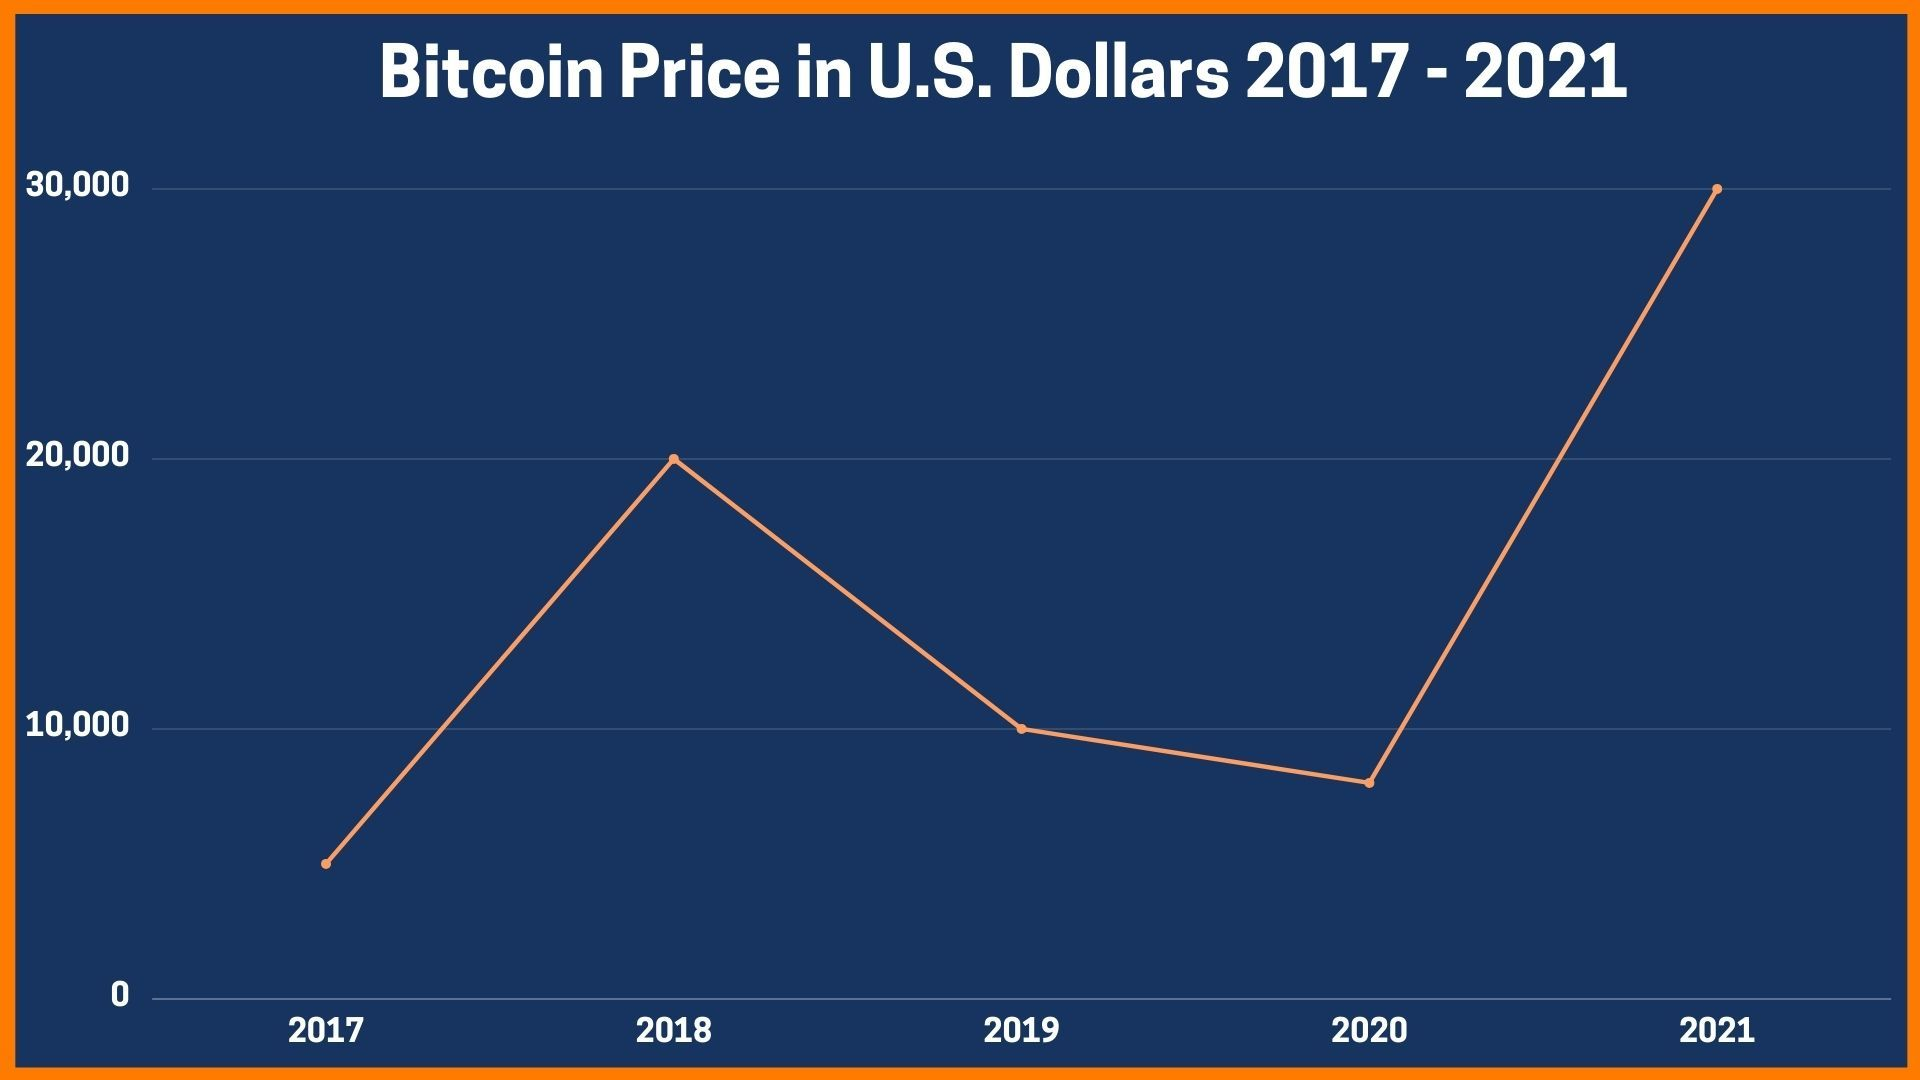 Bitcoin price in U.S Dollars